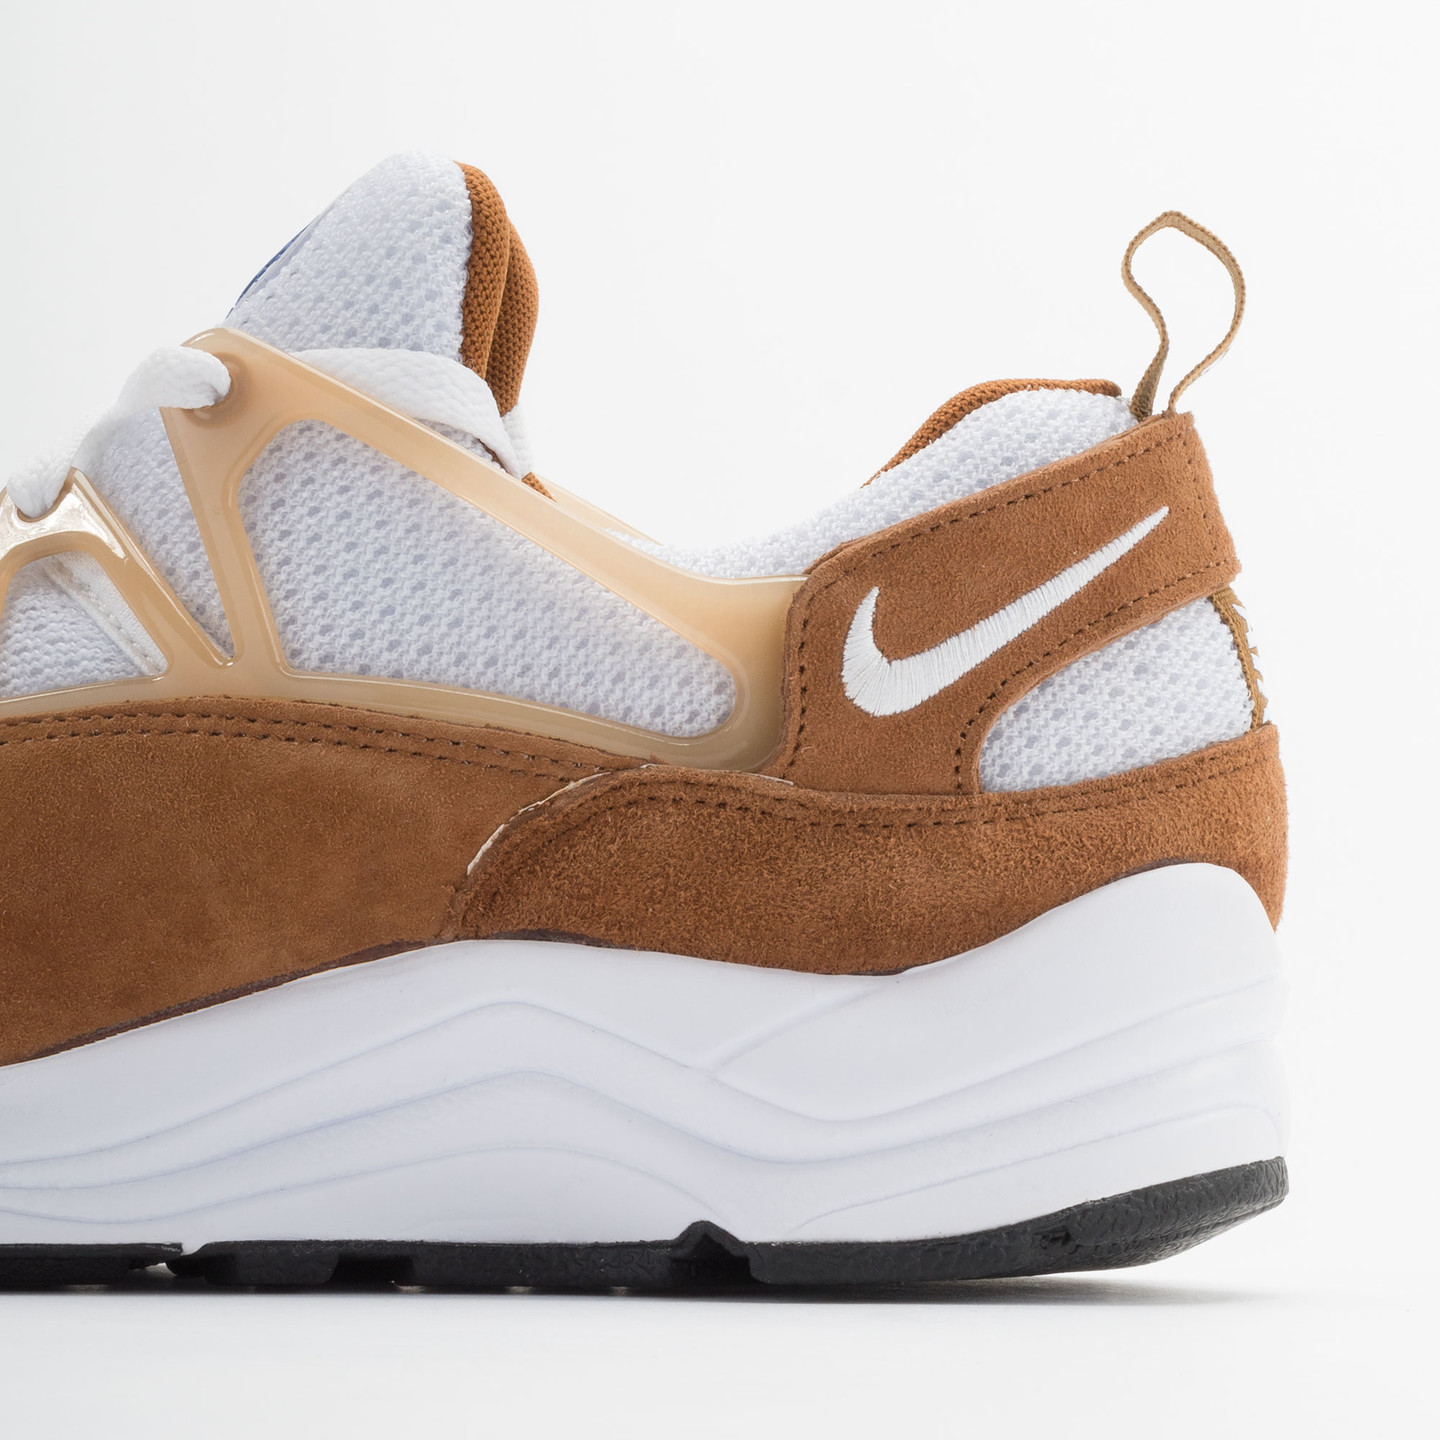 Nike Air Huarache Light Dark Curry / White-Wheat 306127-717-42.5